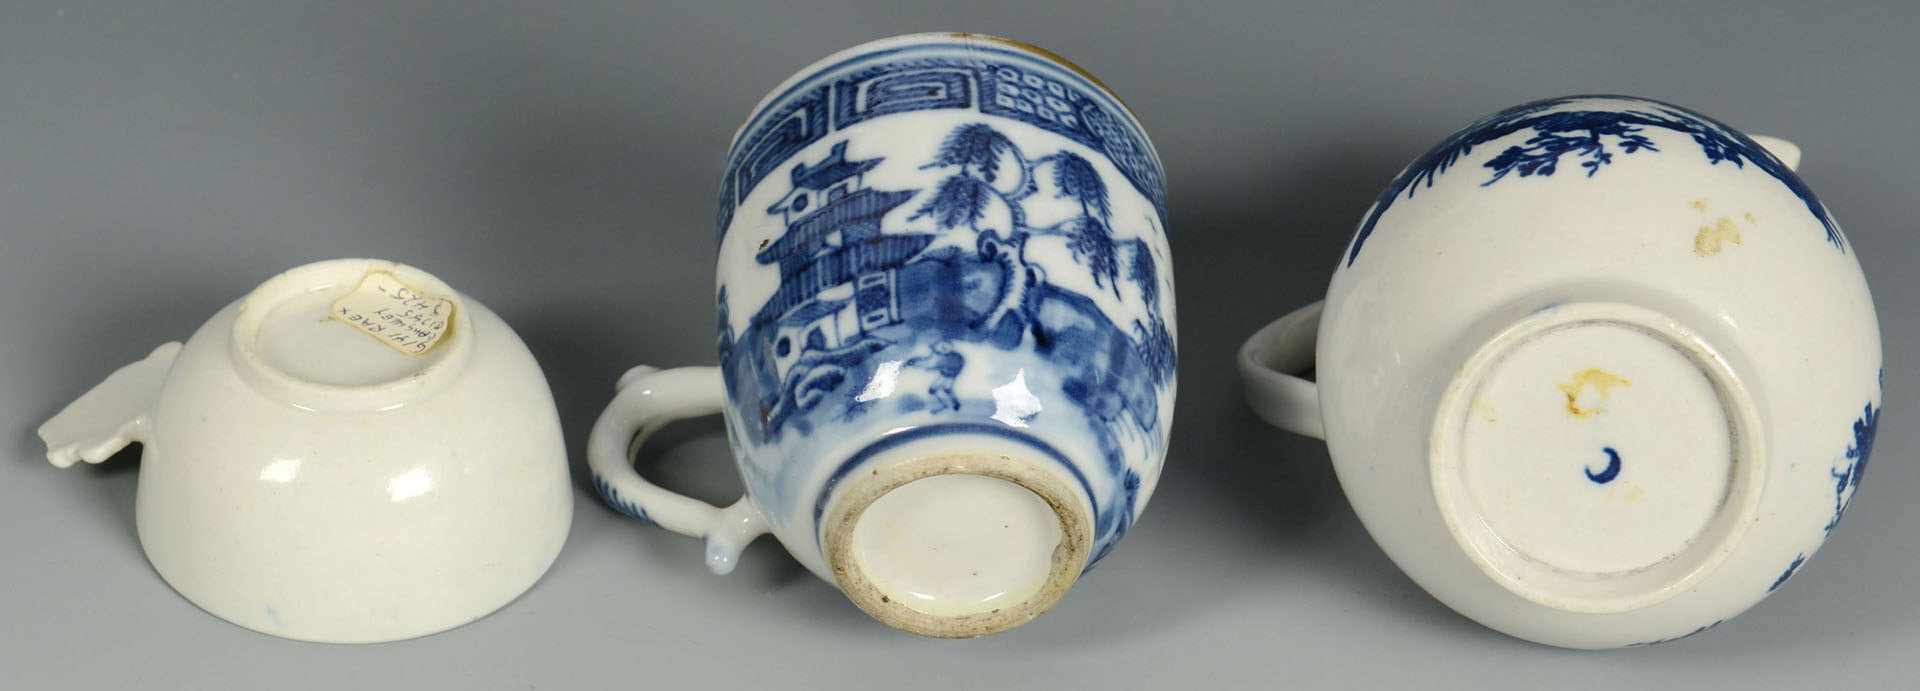 Lot 243: 3 Small Blue and White dishes, prob. Worcester or